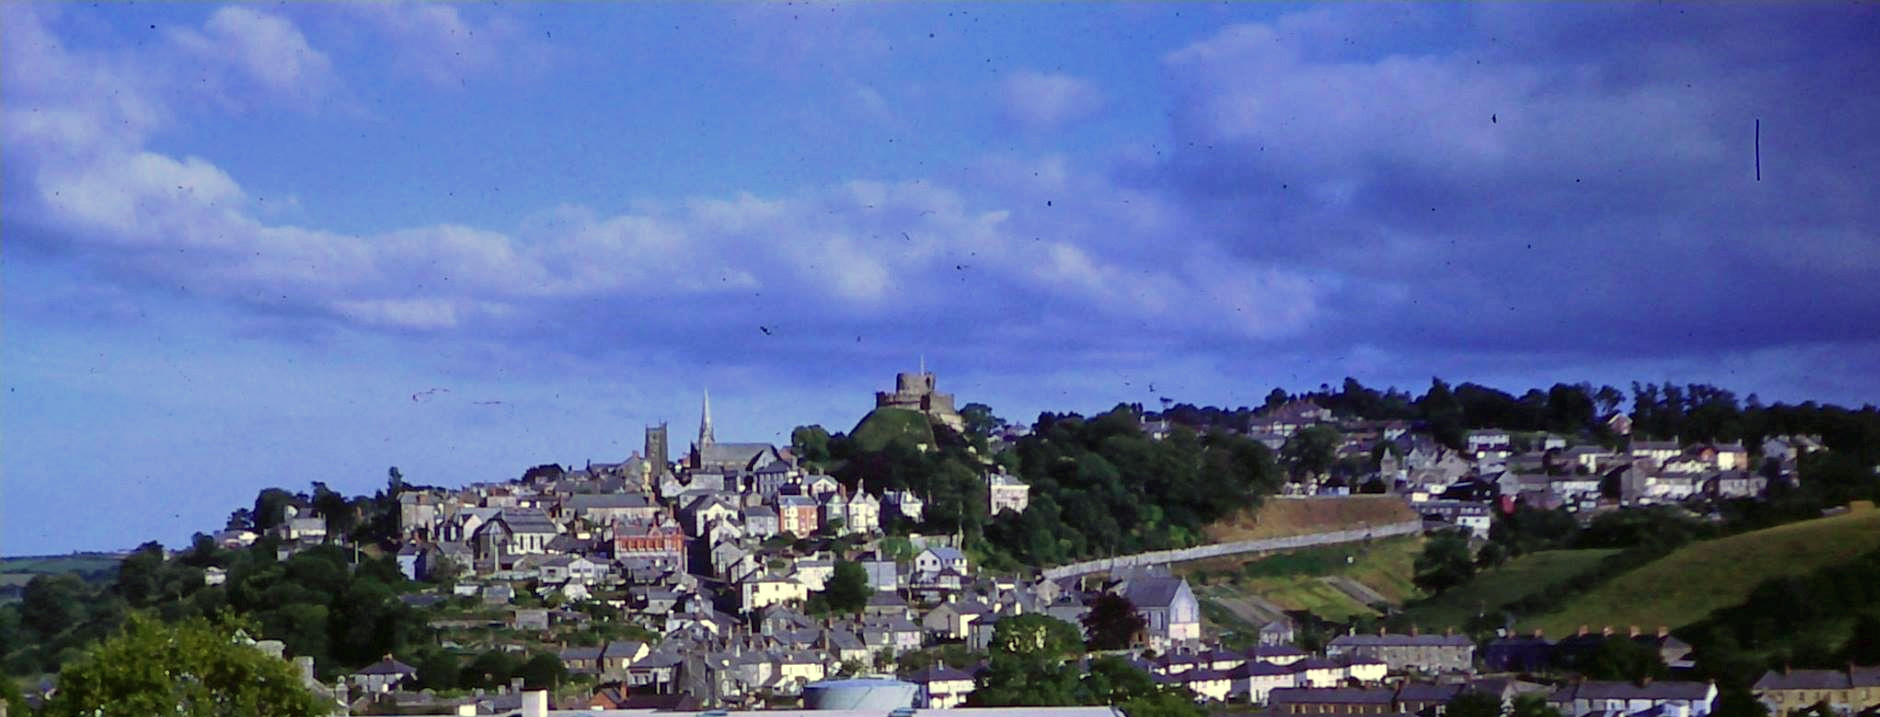 Launceston Skyline. Photo courtesy of Chris Gynn